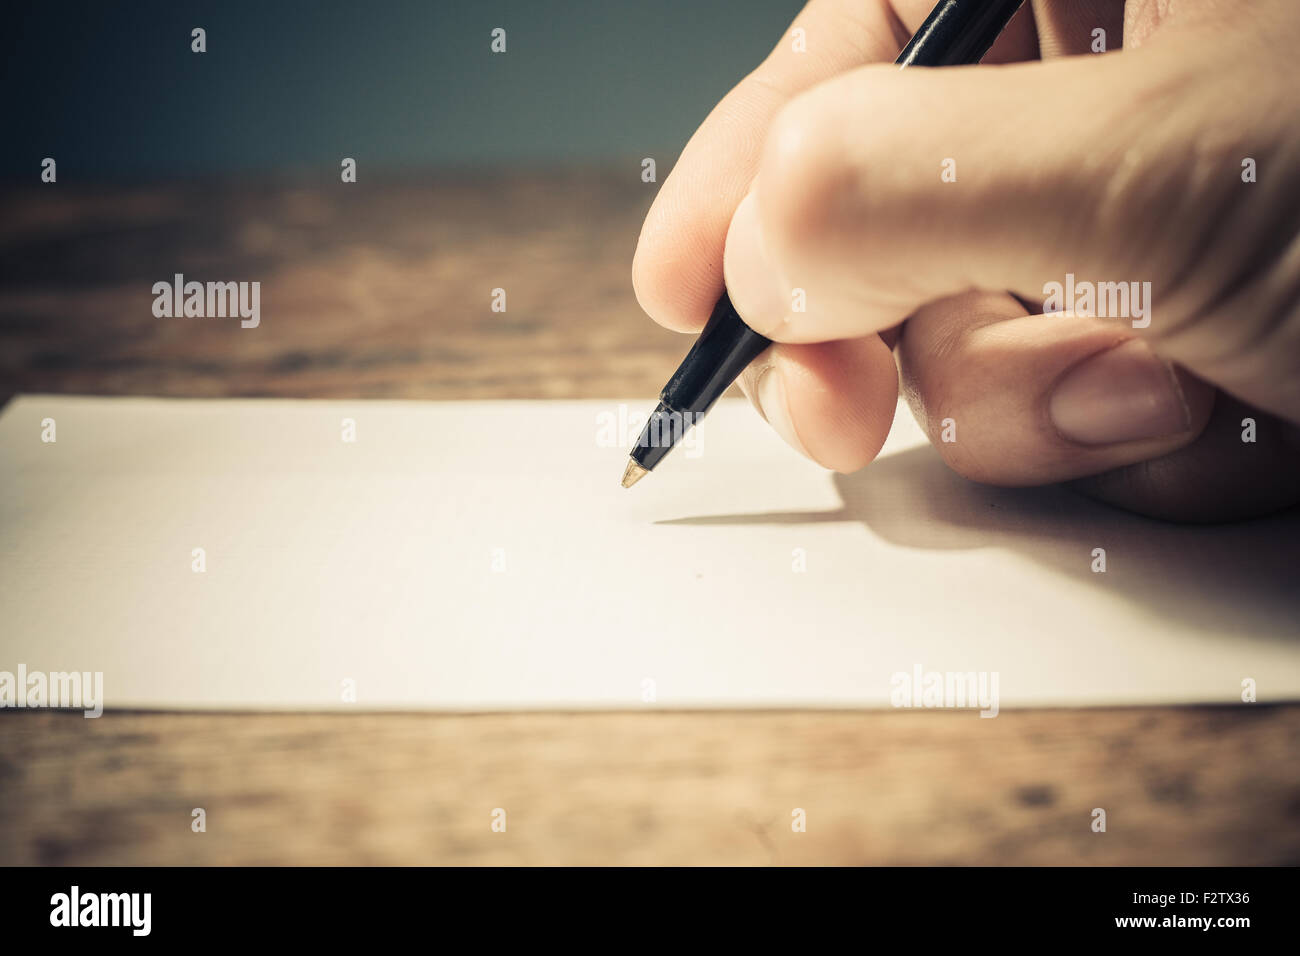 Closeup on a man's hand writing on apiece of paper with a pen - Stock Image